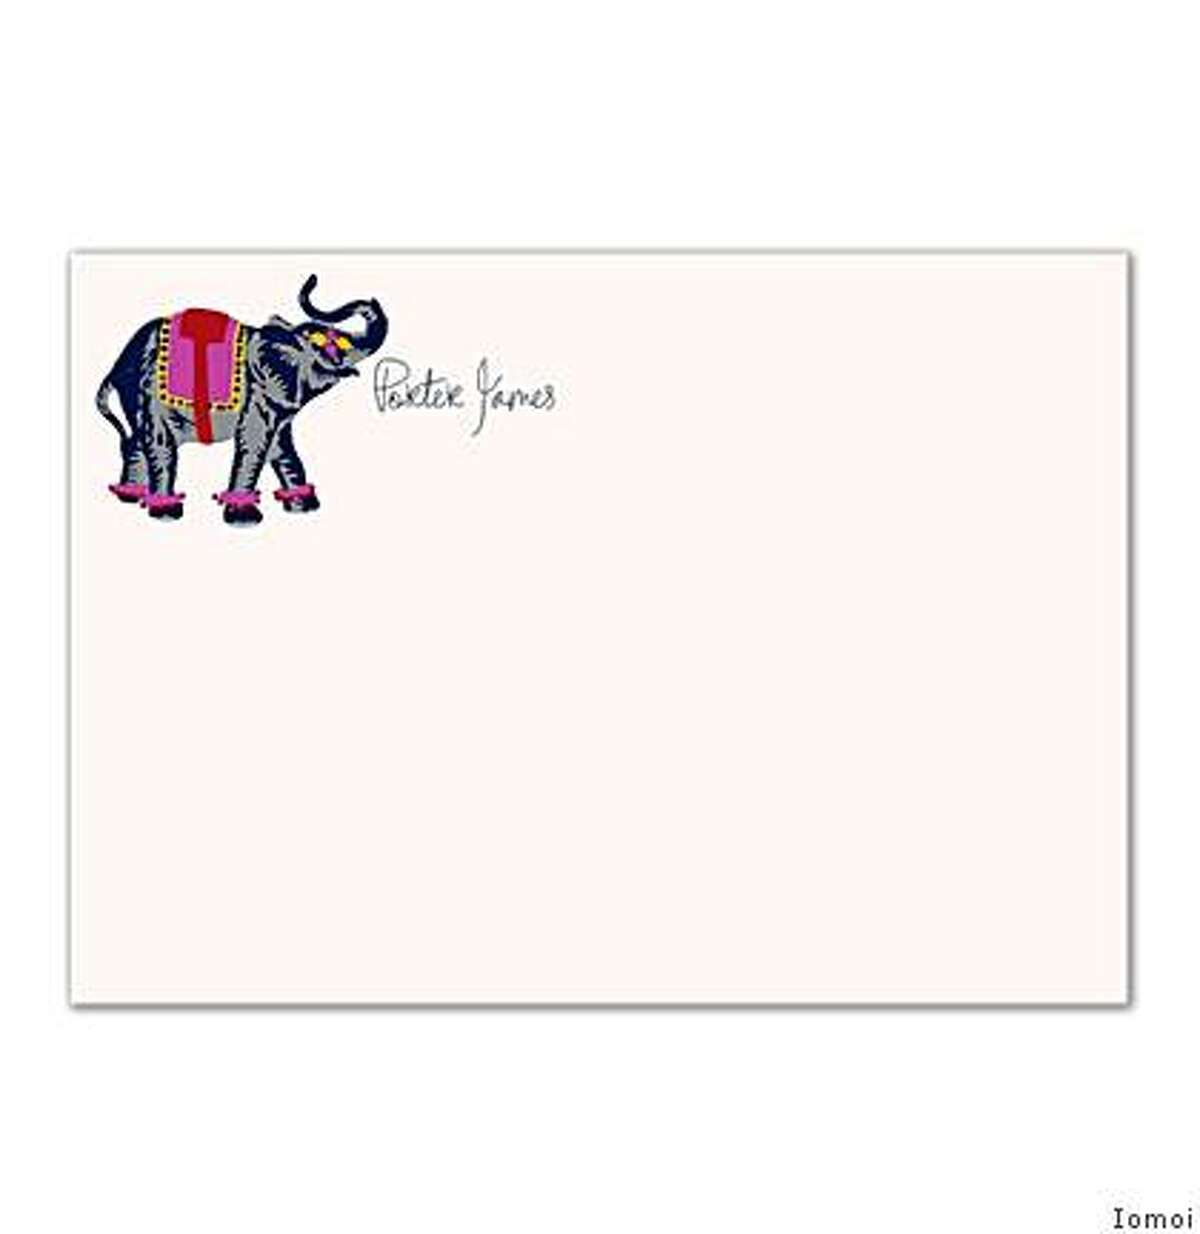 Lafayette company Iomoi offers personalized stationery and e-stationery.